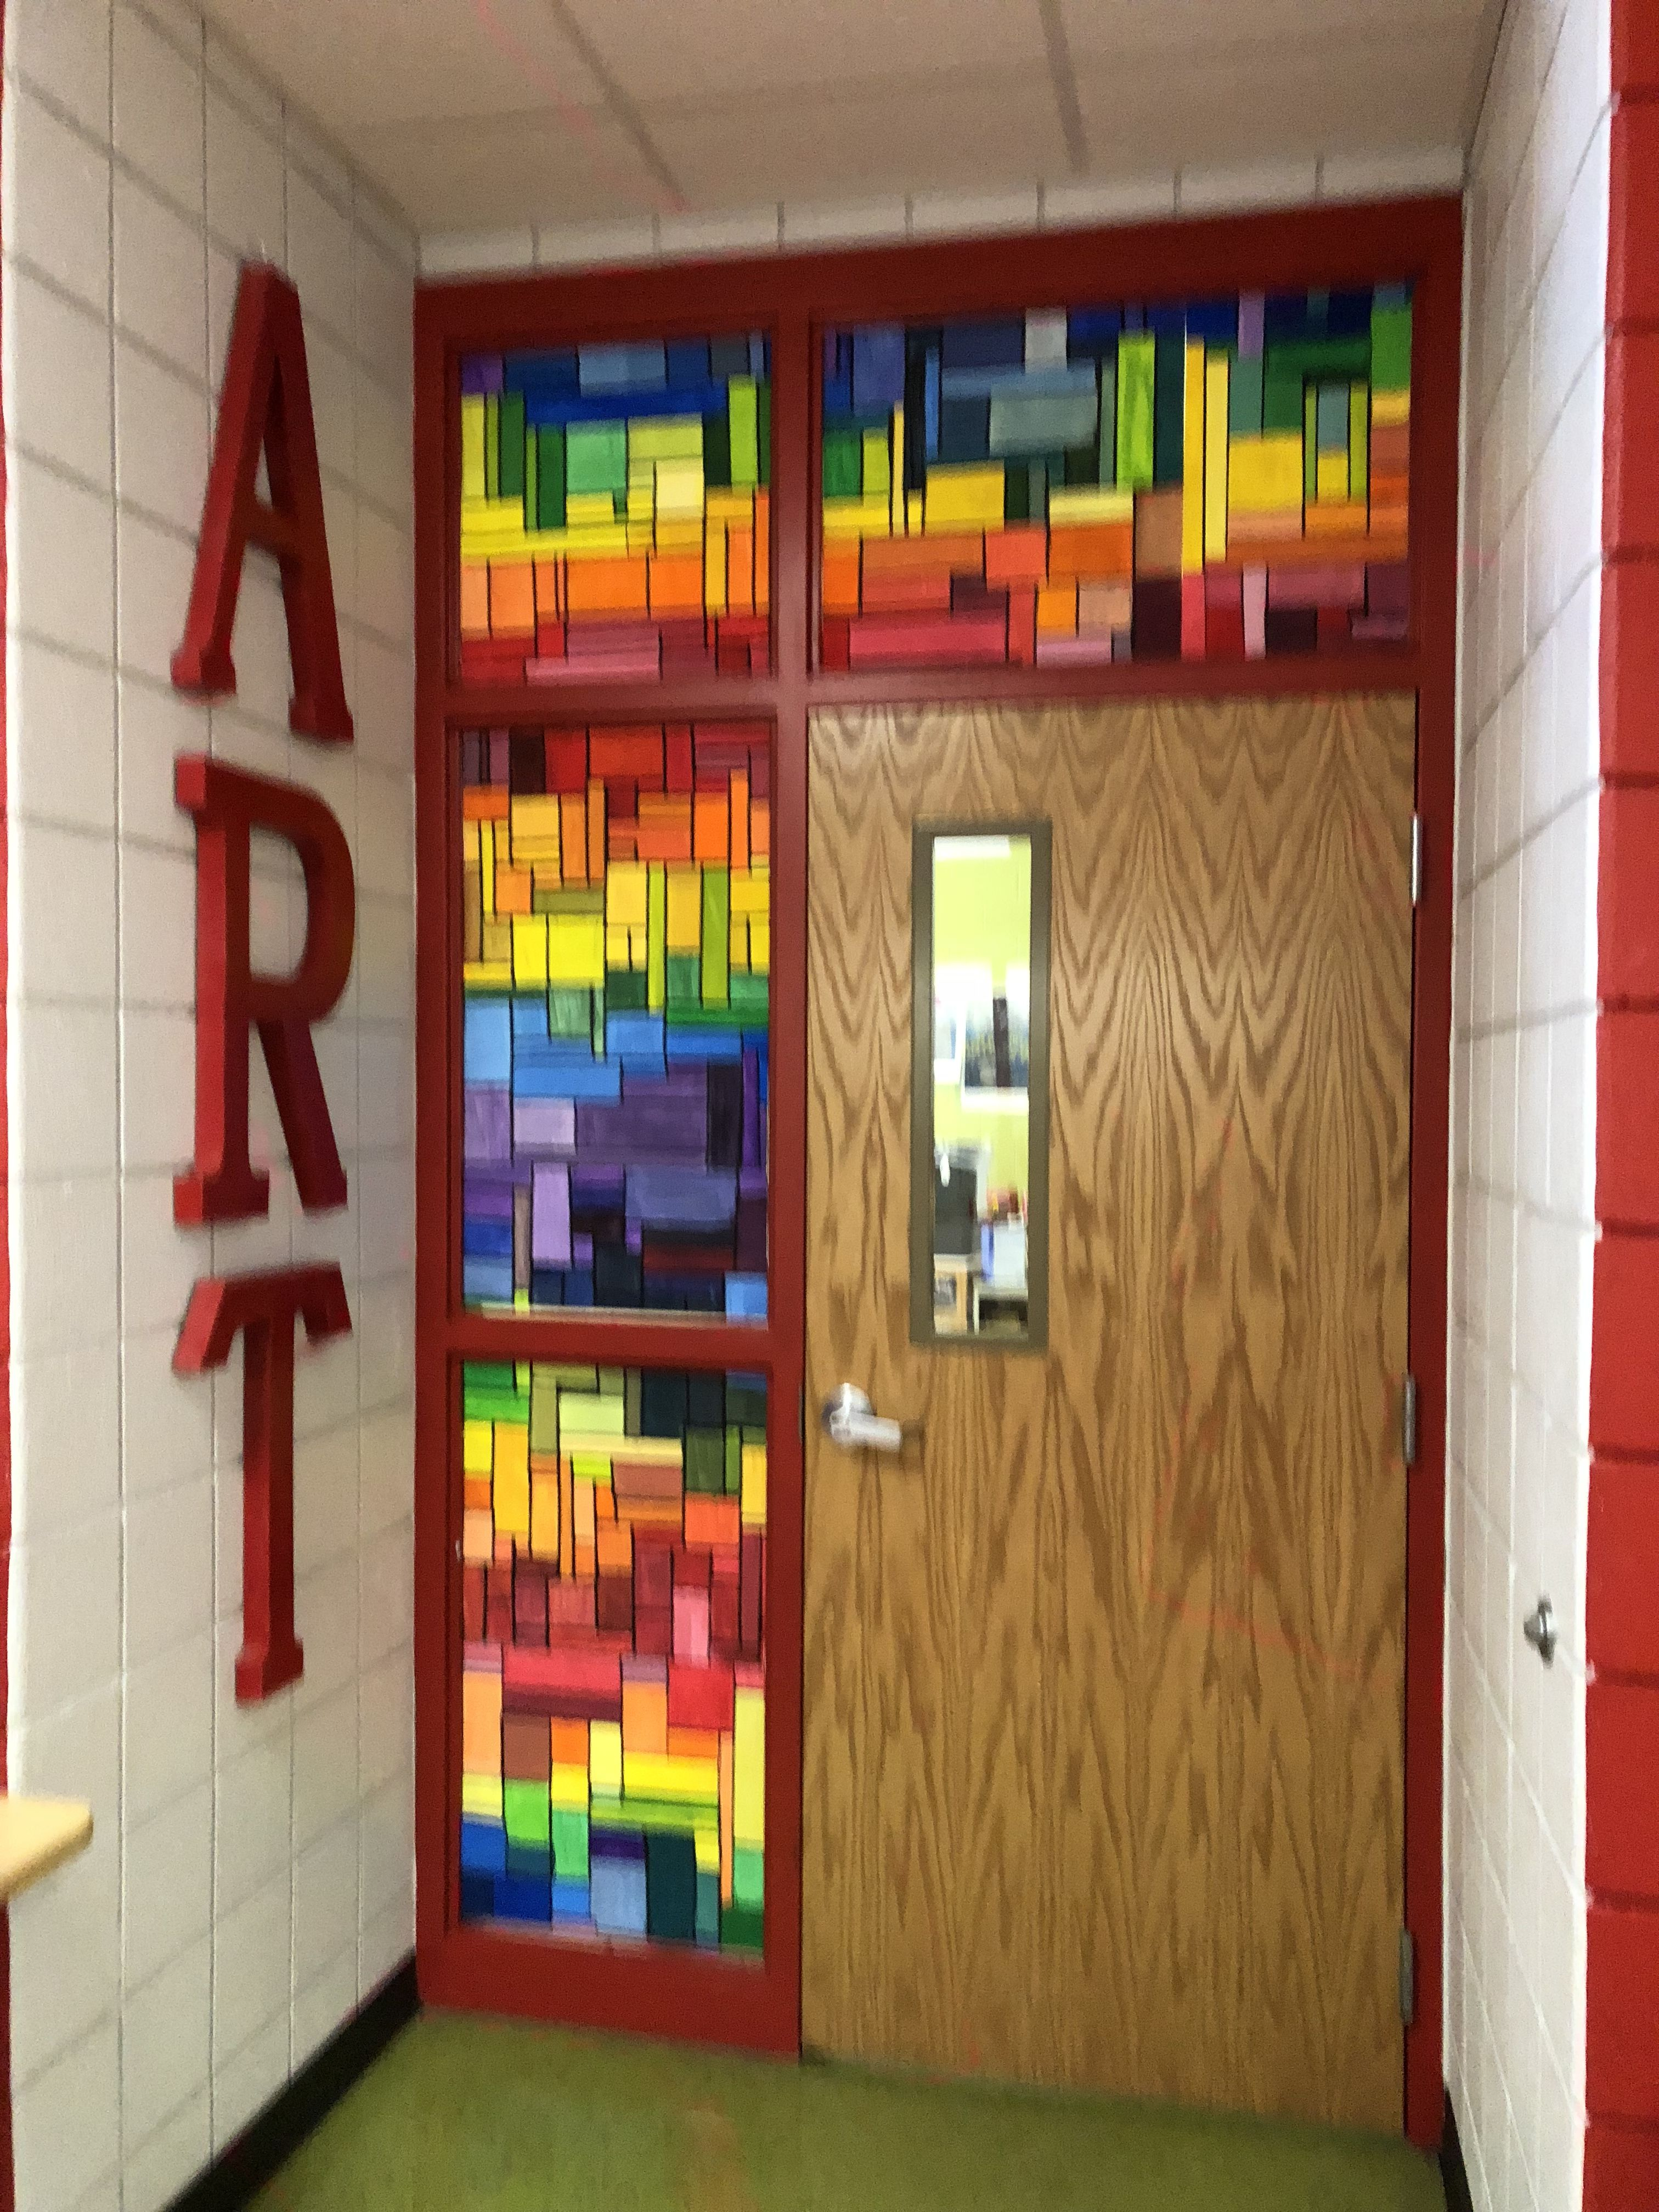 Classroom Door Painted As A Spectrum Art Classroom Door Art Classroom Classroom Decor